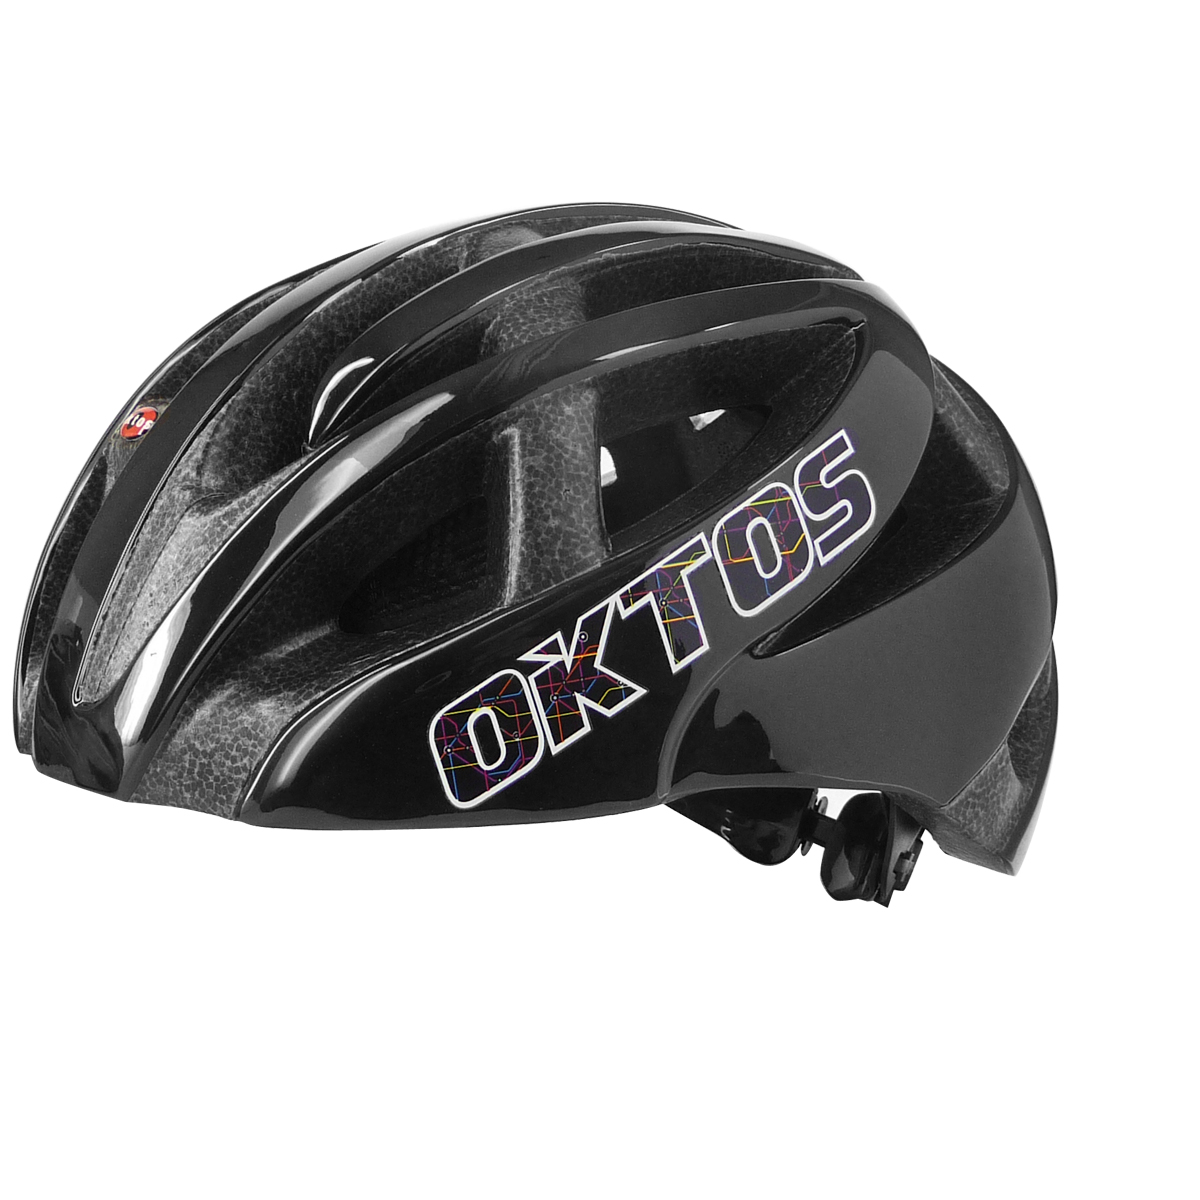 Casque vélo adulte Oktos City Map double inmold noir M